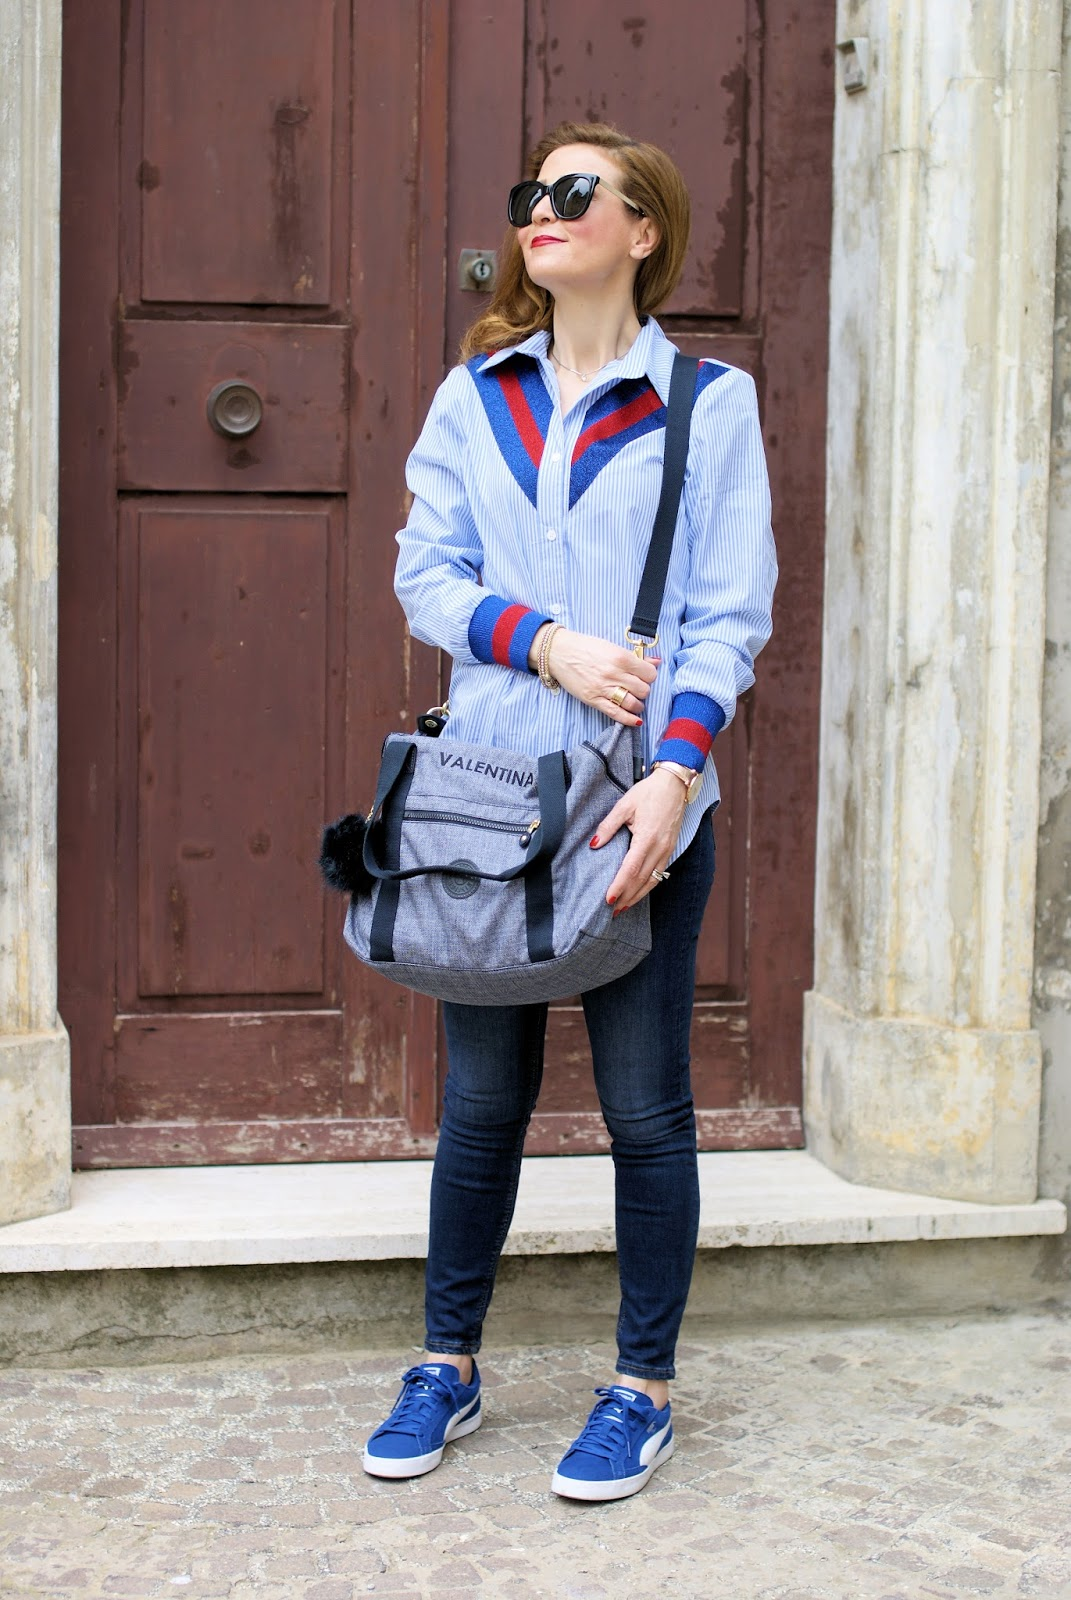 Kipling personalized bag: Wesosho shirt on Fashion and Cookies fashion blog, fashion blogger style